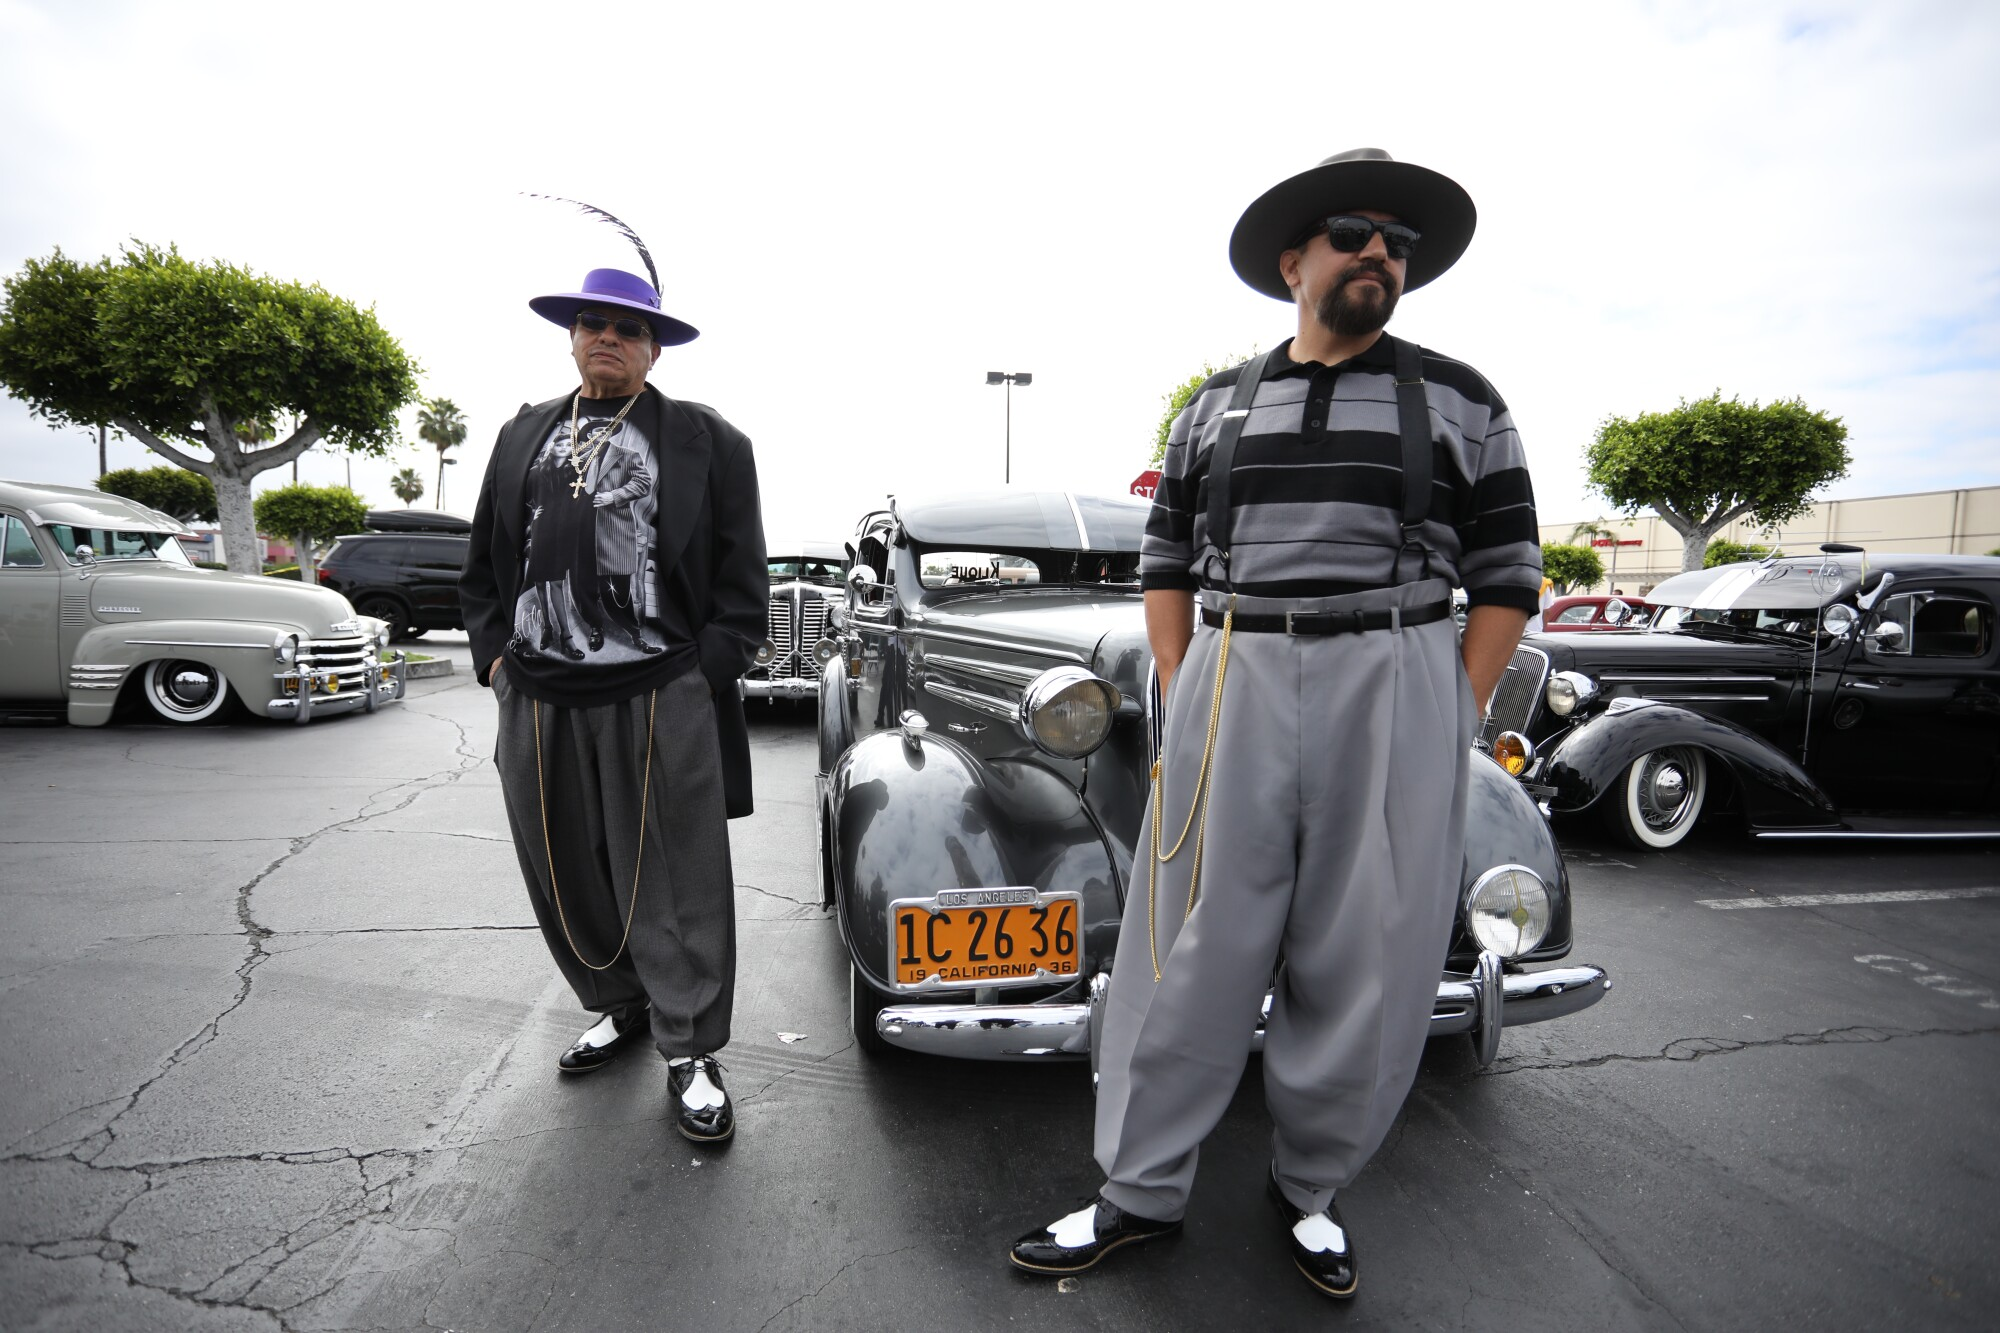 Two men in pants pegged at the ankle, with long chains, hats and shining saddle shoes, stand near classic cars.